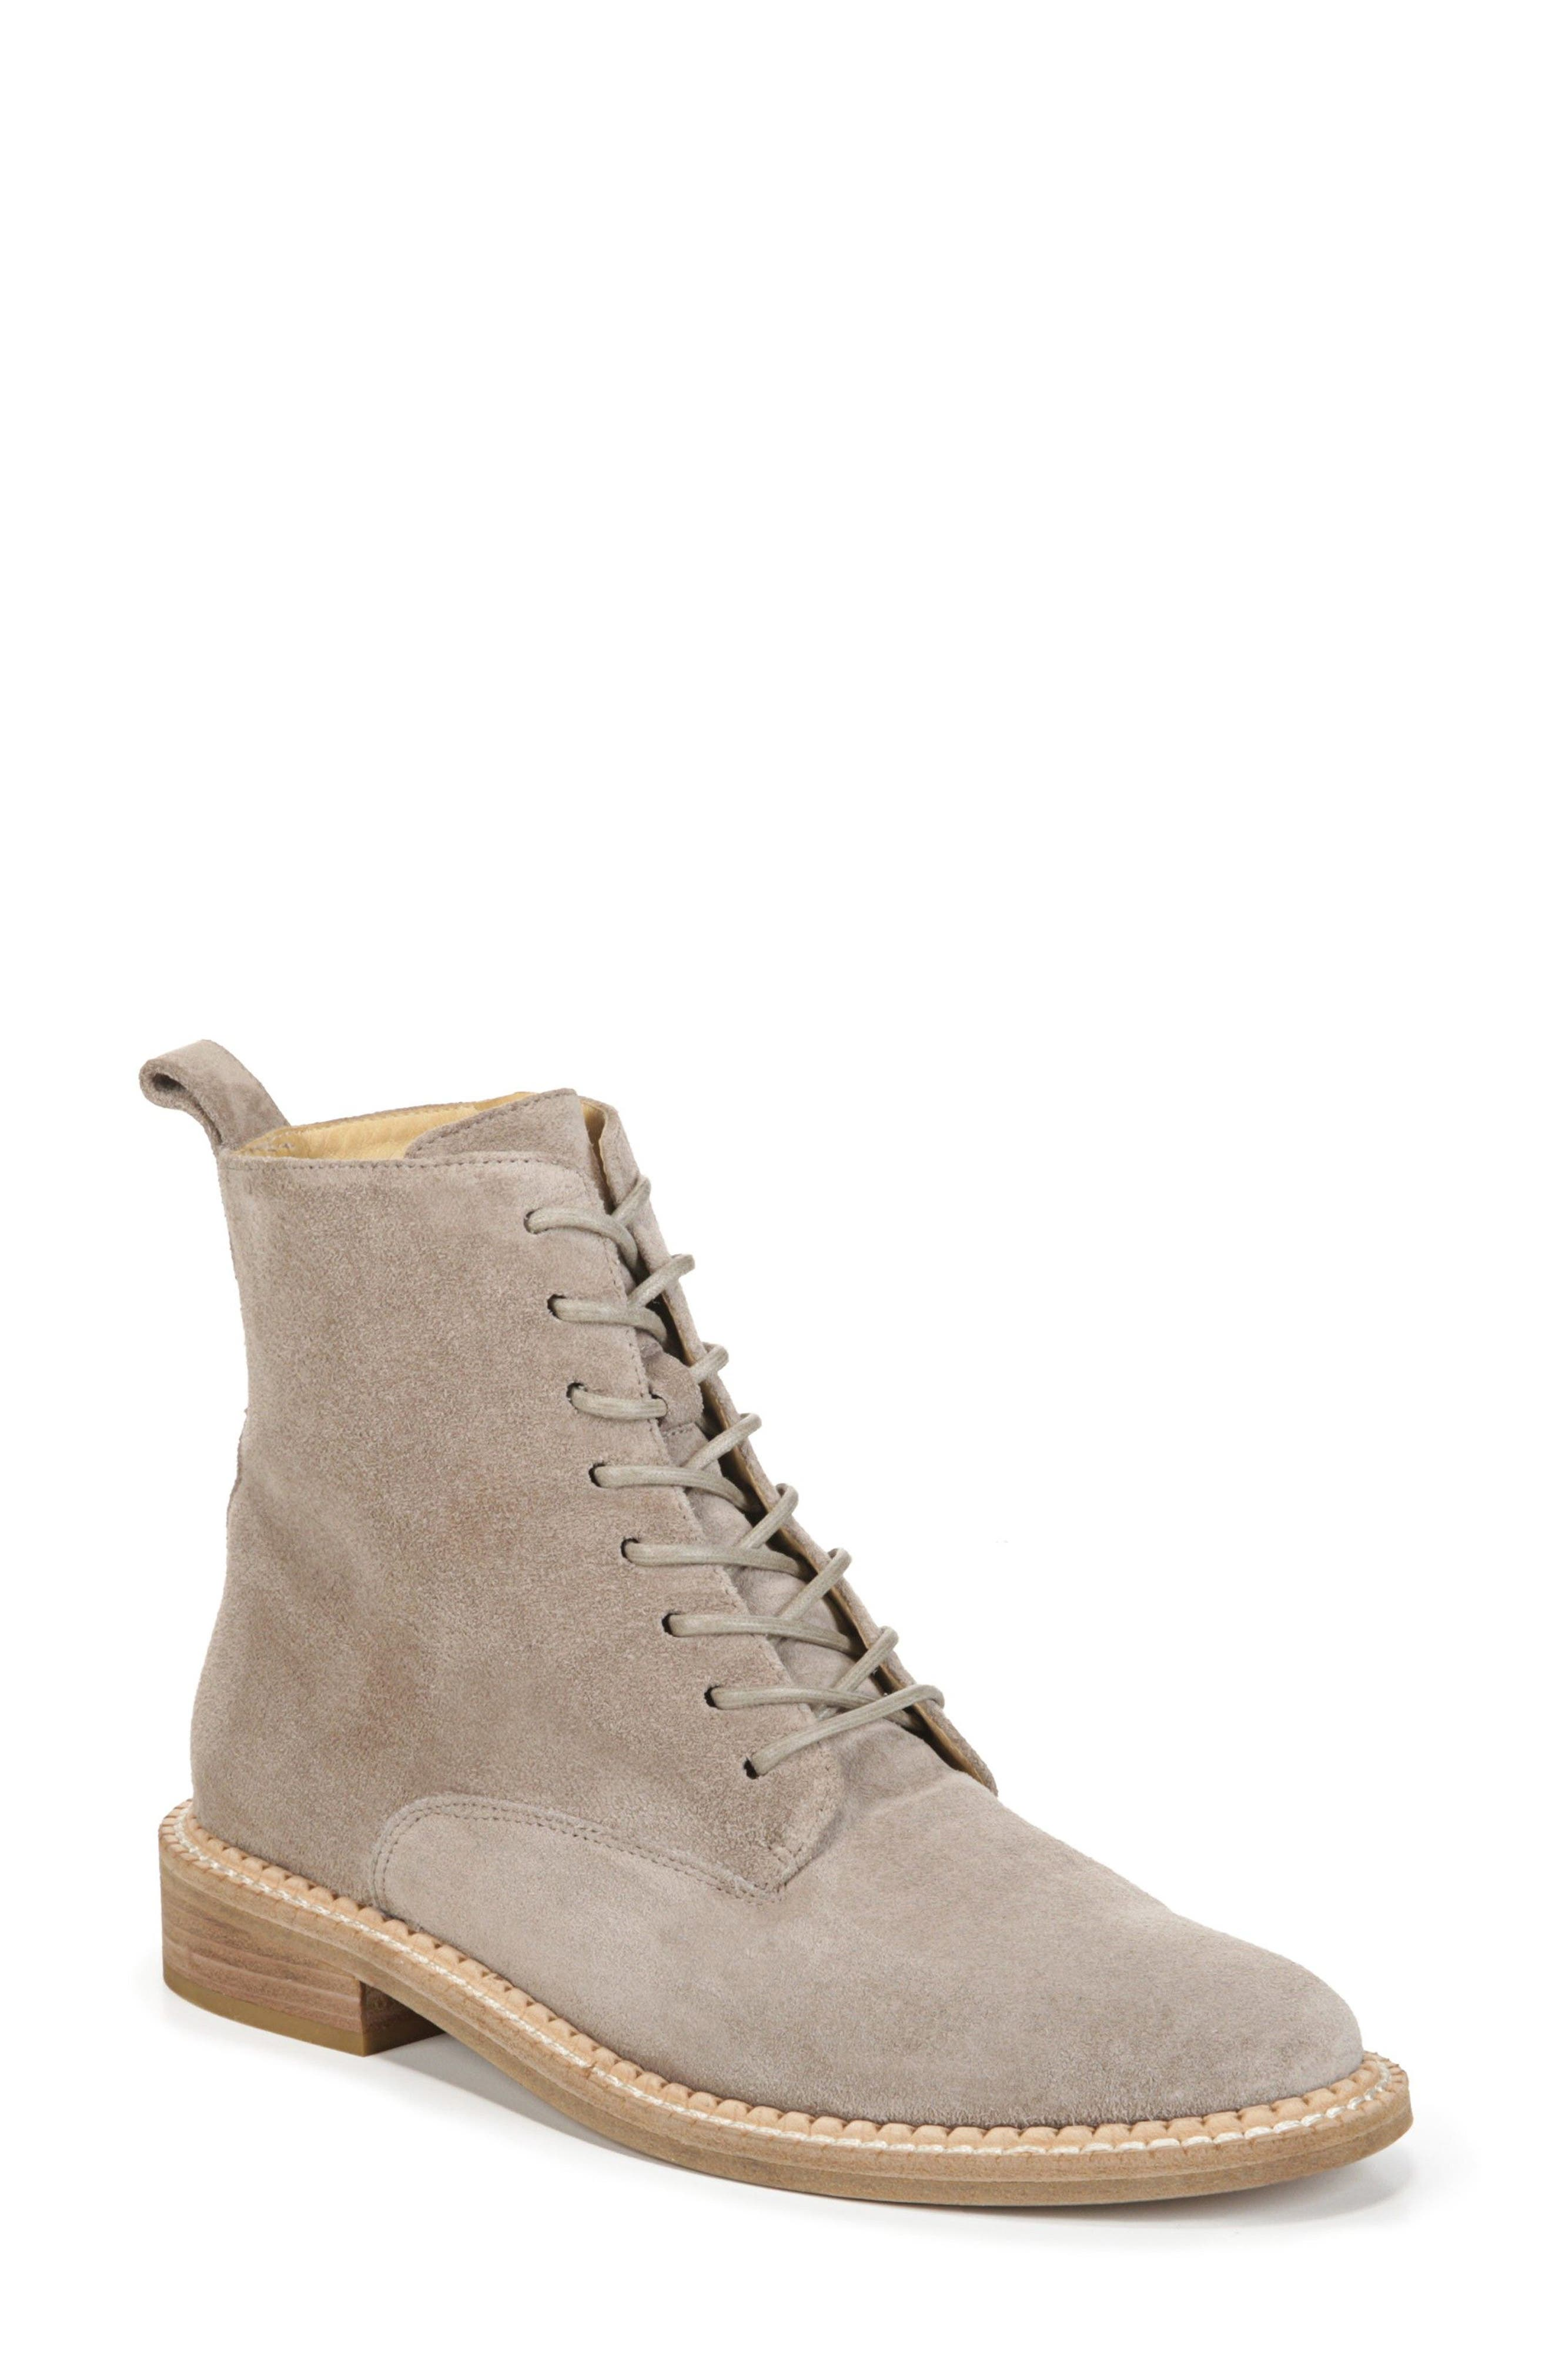 Alternate Image 1 Selected - Vince Cabria Lace-Up Boot (Women)